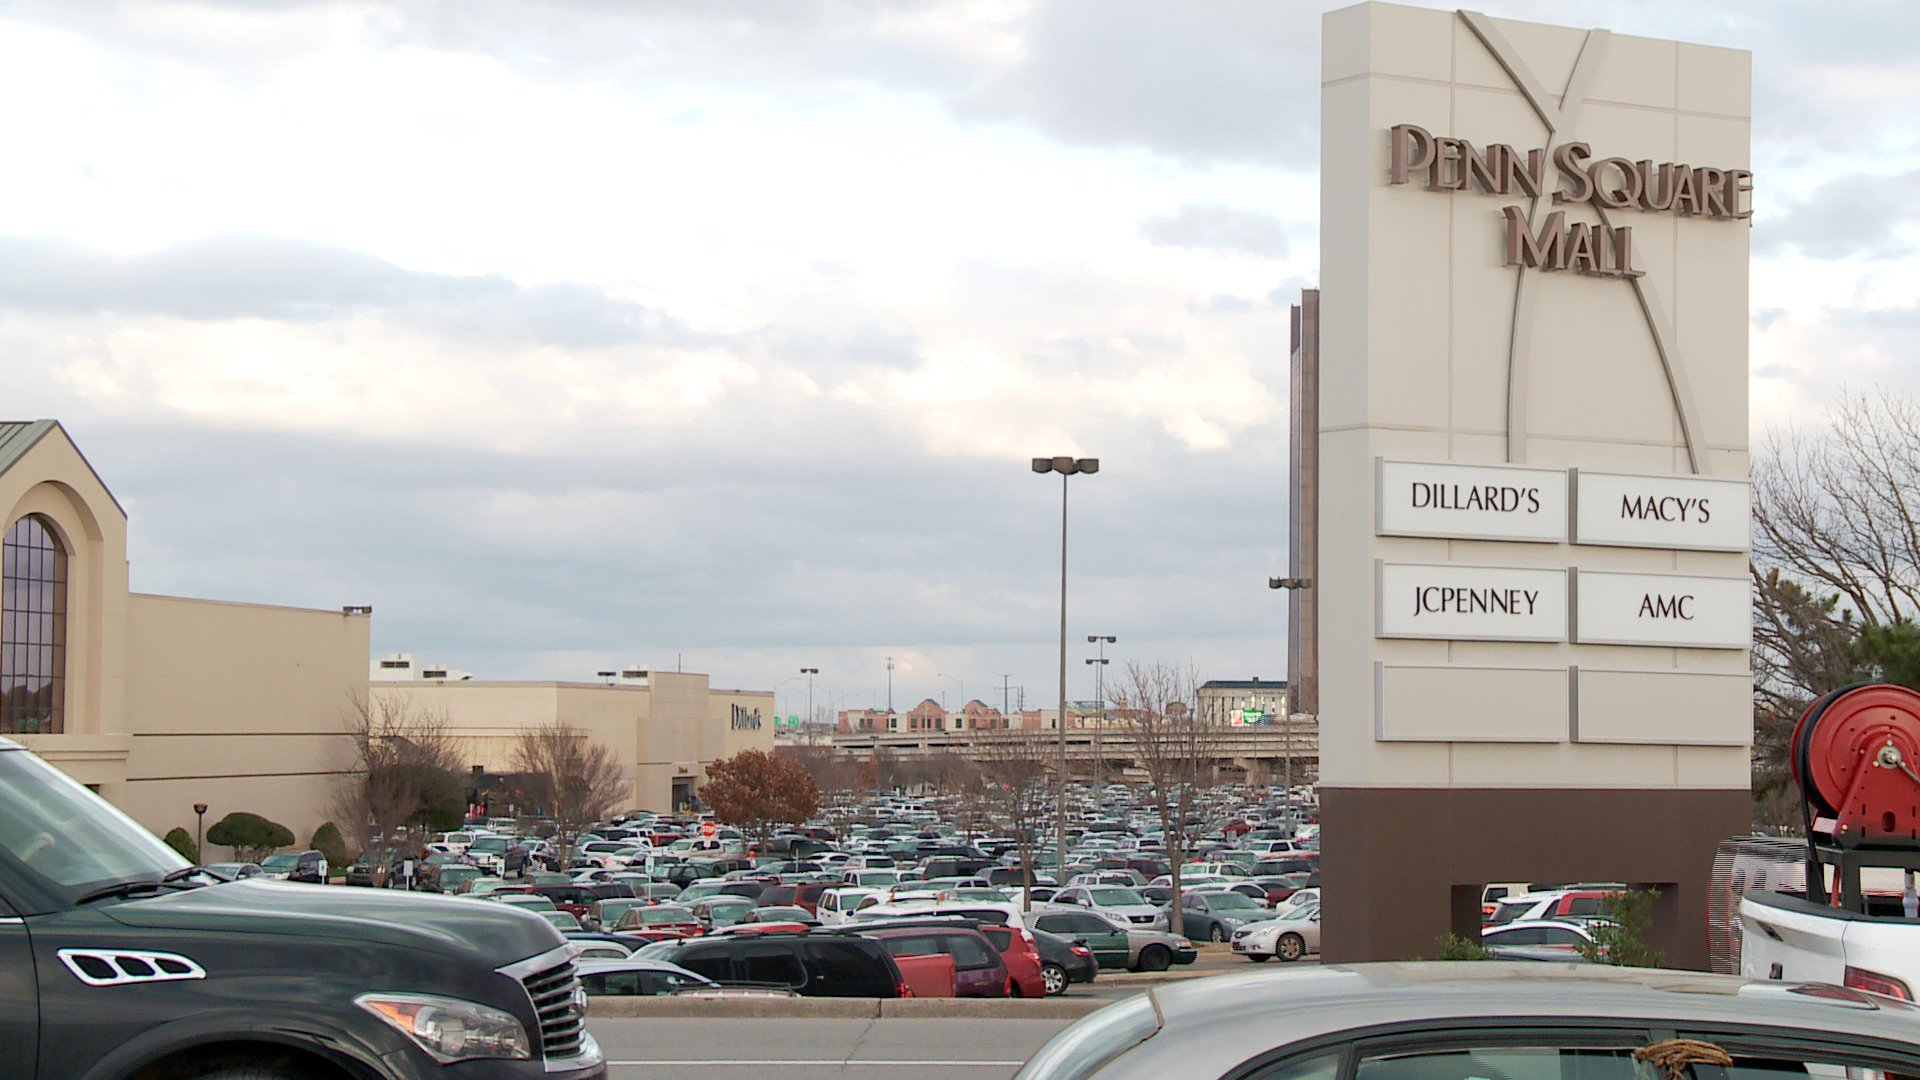 Penn Square Mall